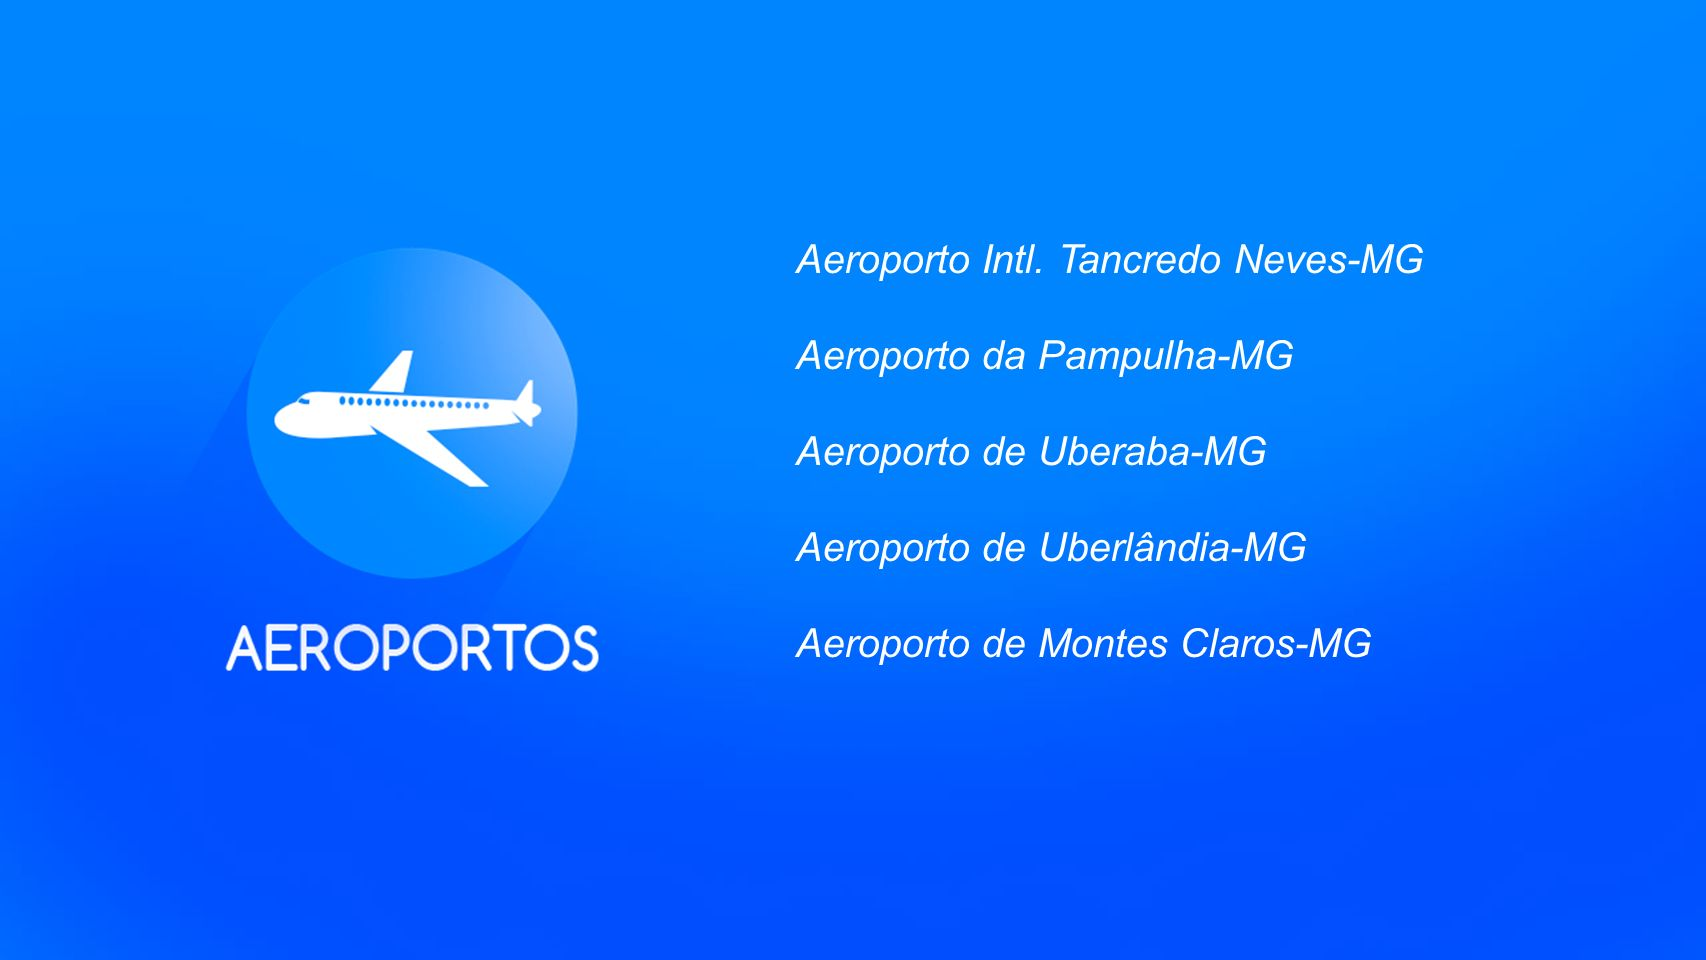 Aeroporto Intl. Tancredo Neves-MG